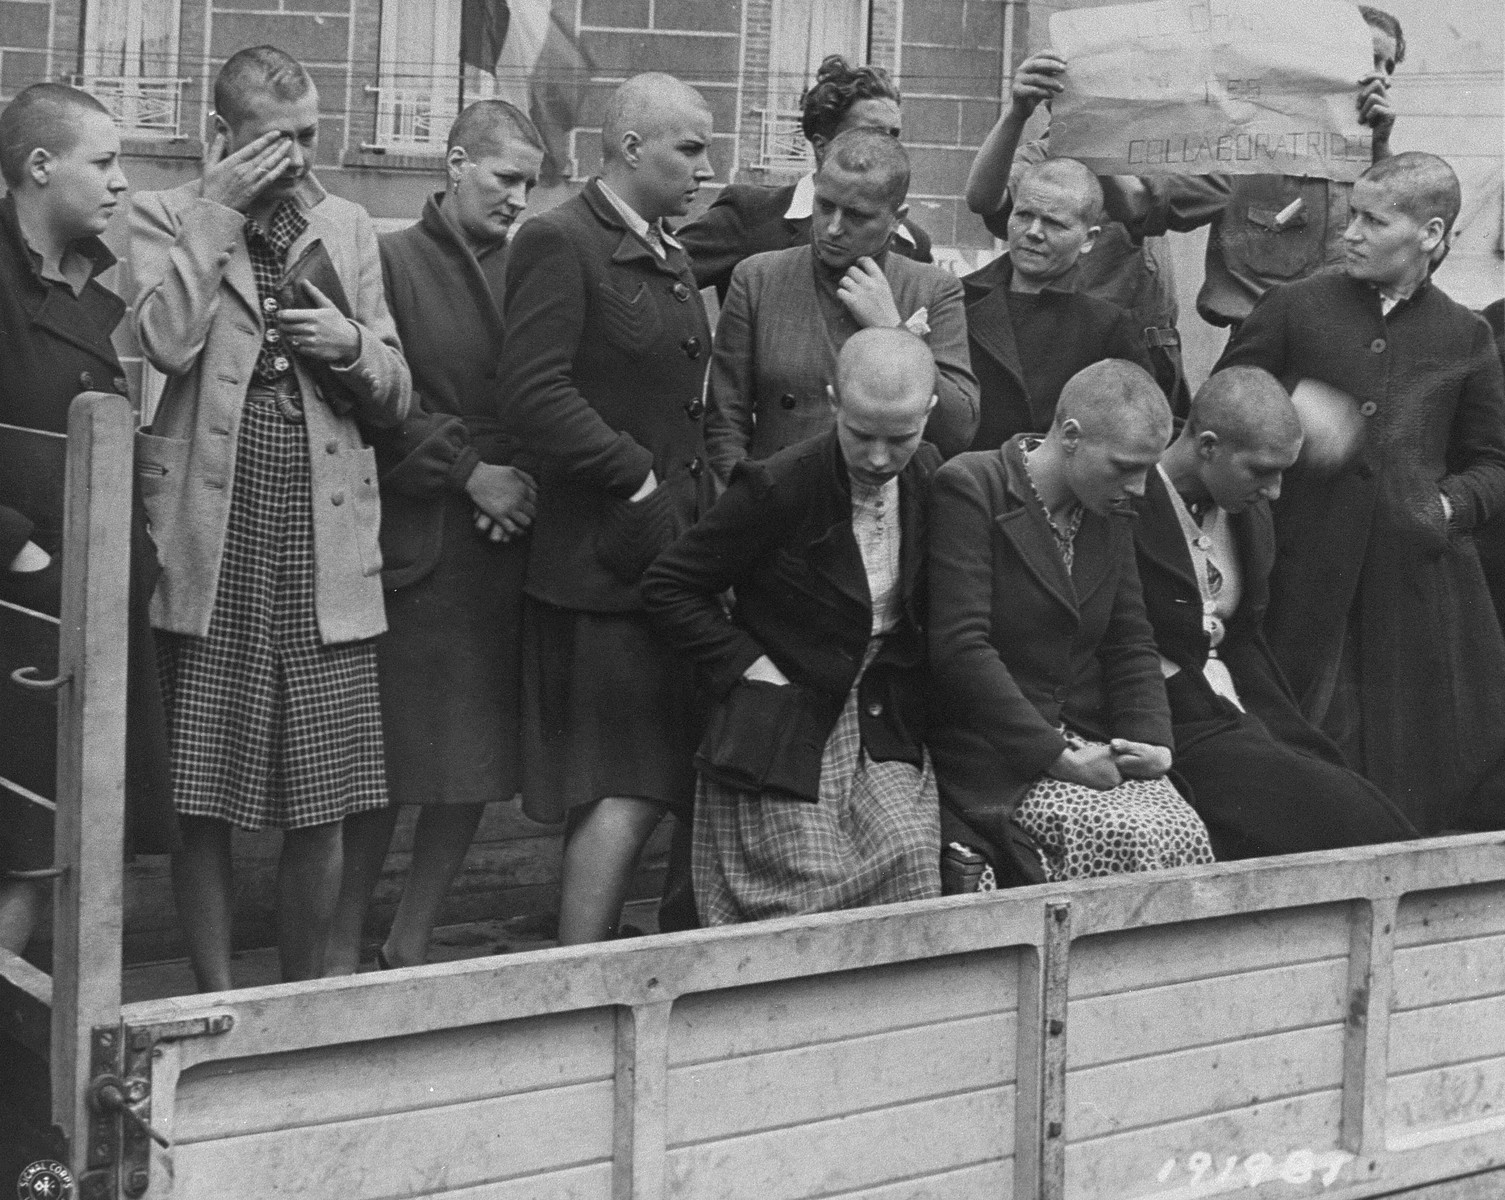 Women who consorted with the Germans during the occupation are driven through the streets of Cherbourg by members of the French resistance.  Their head were shaven in order to humiliate them.